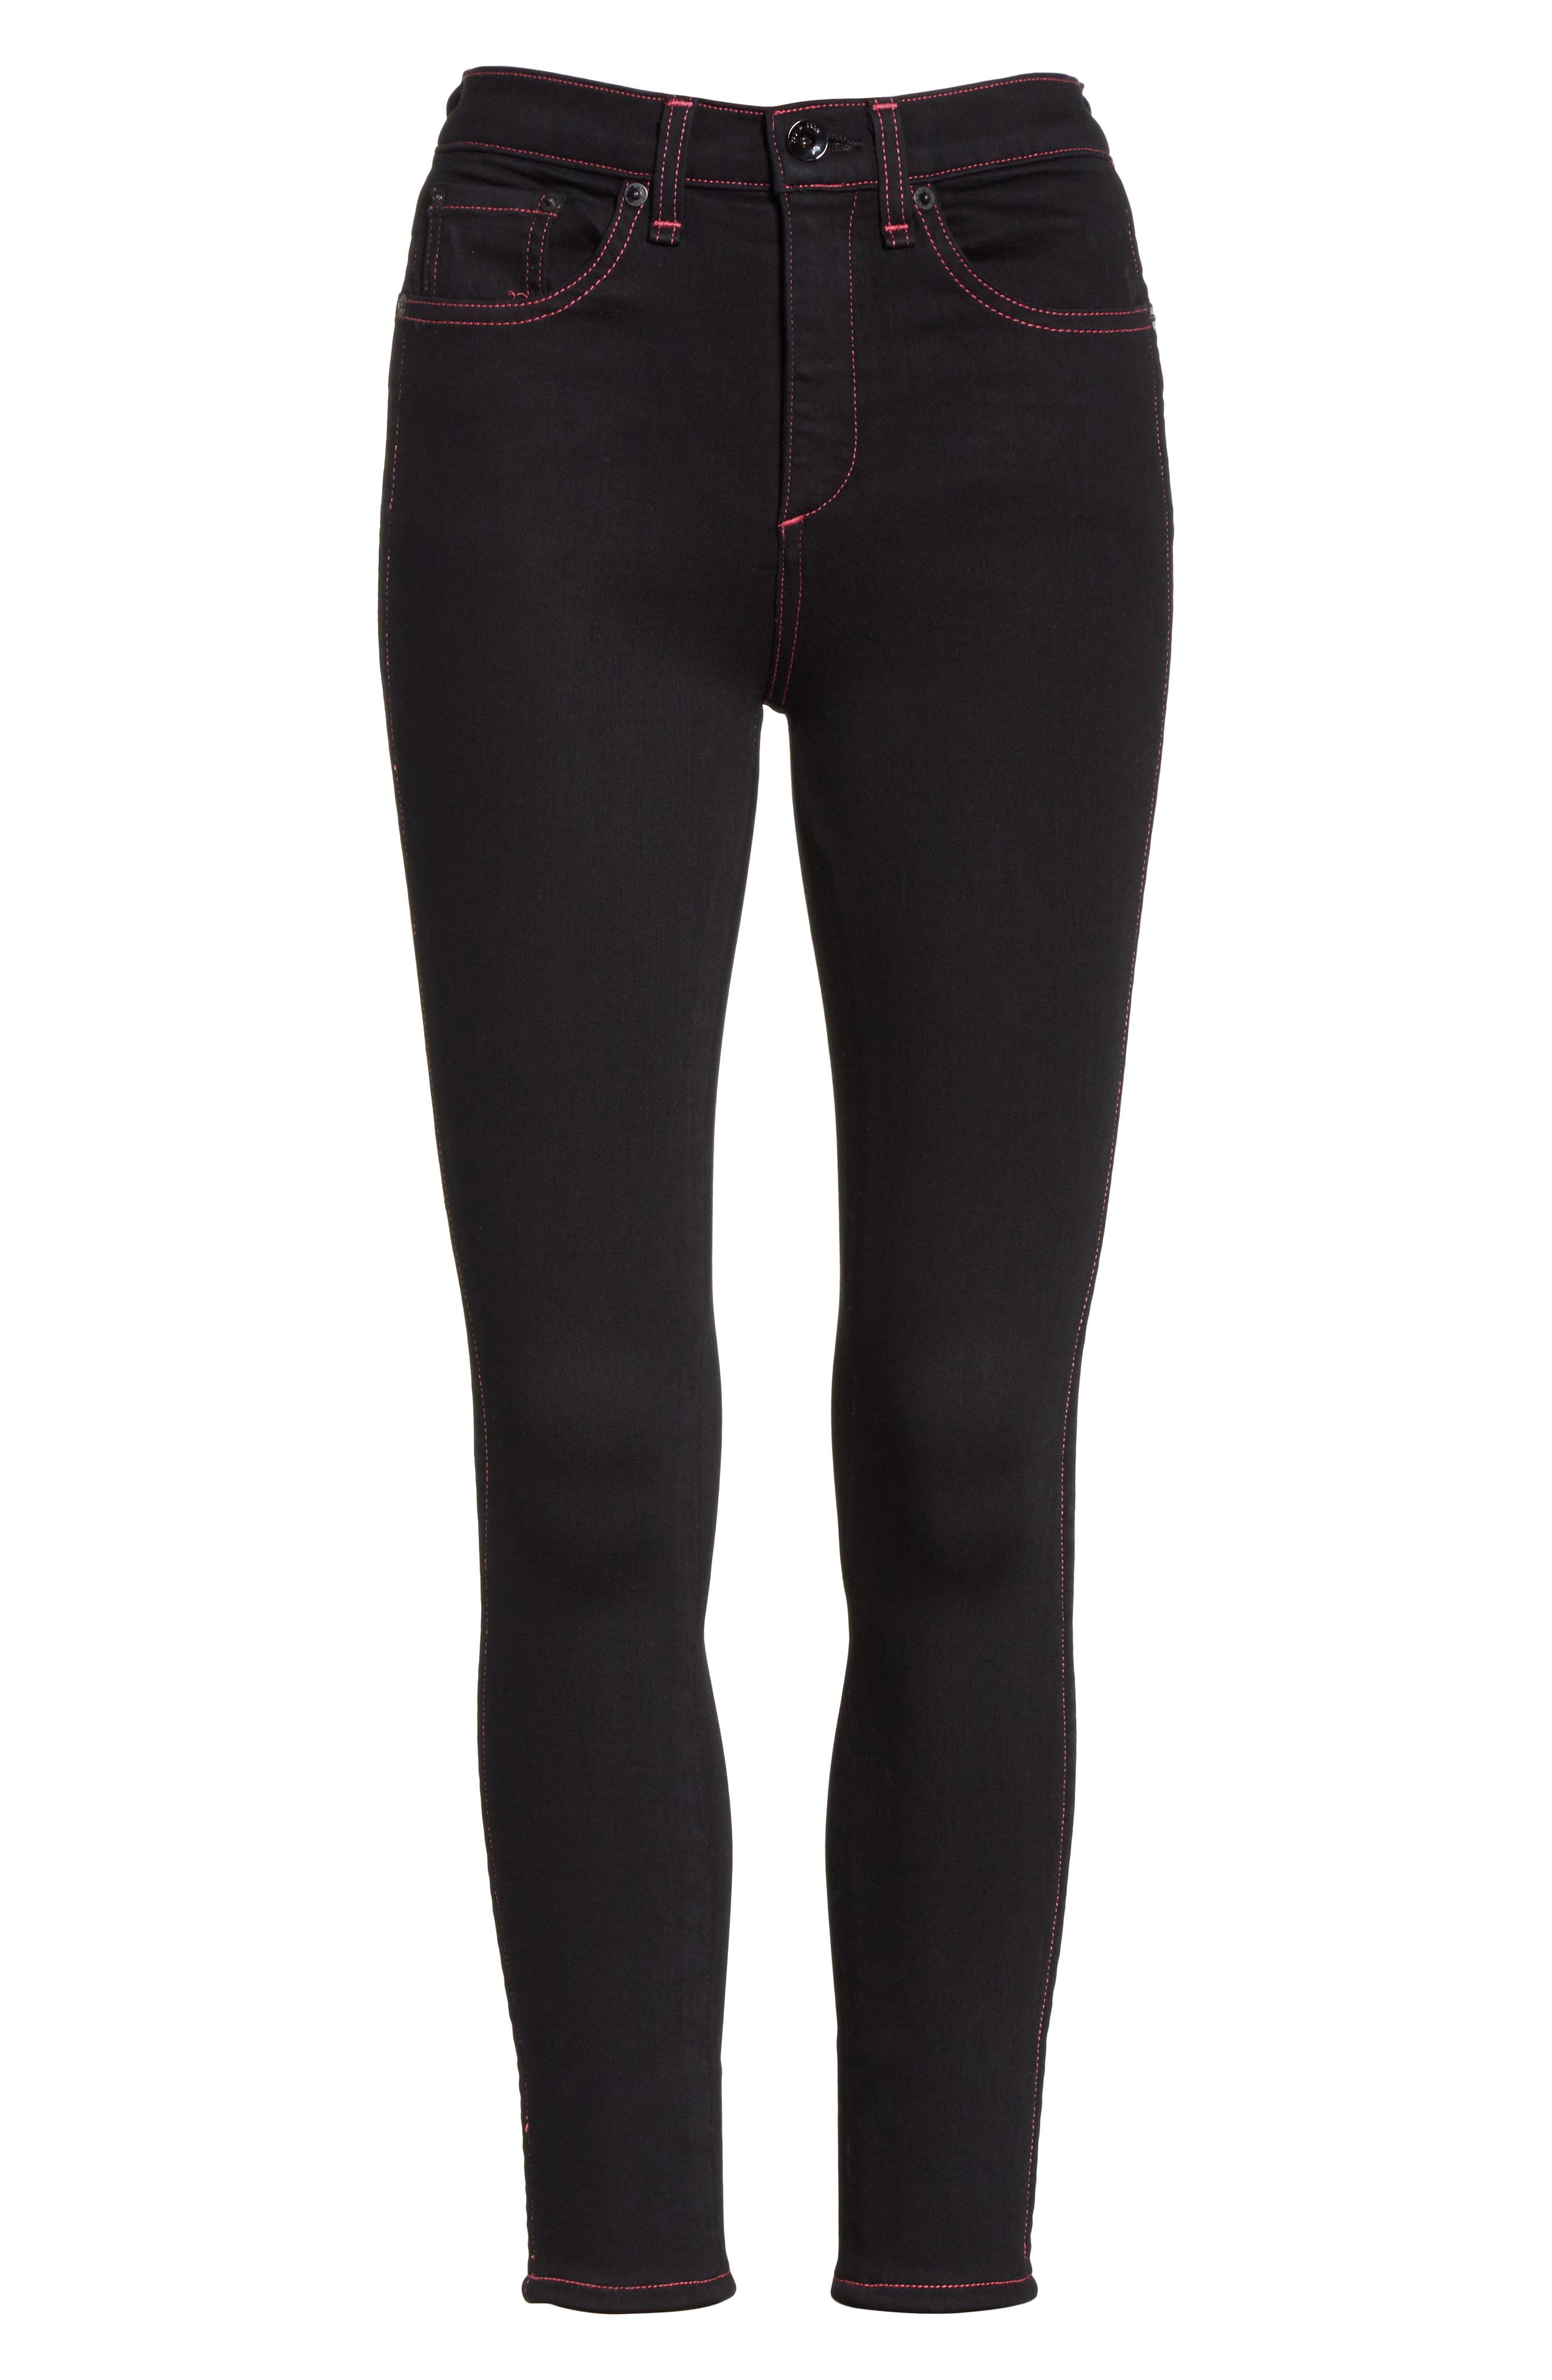 Miich High Rise Crop Skinny Jeans,                             Alternate thumbnail 6, color,                             Black Stitch